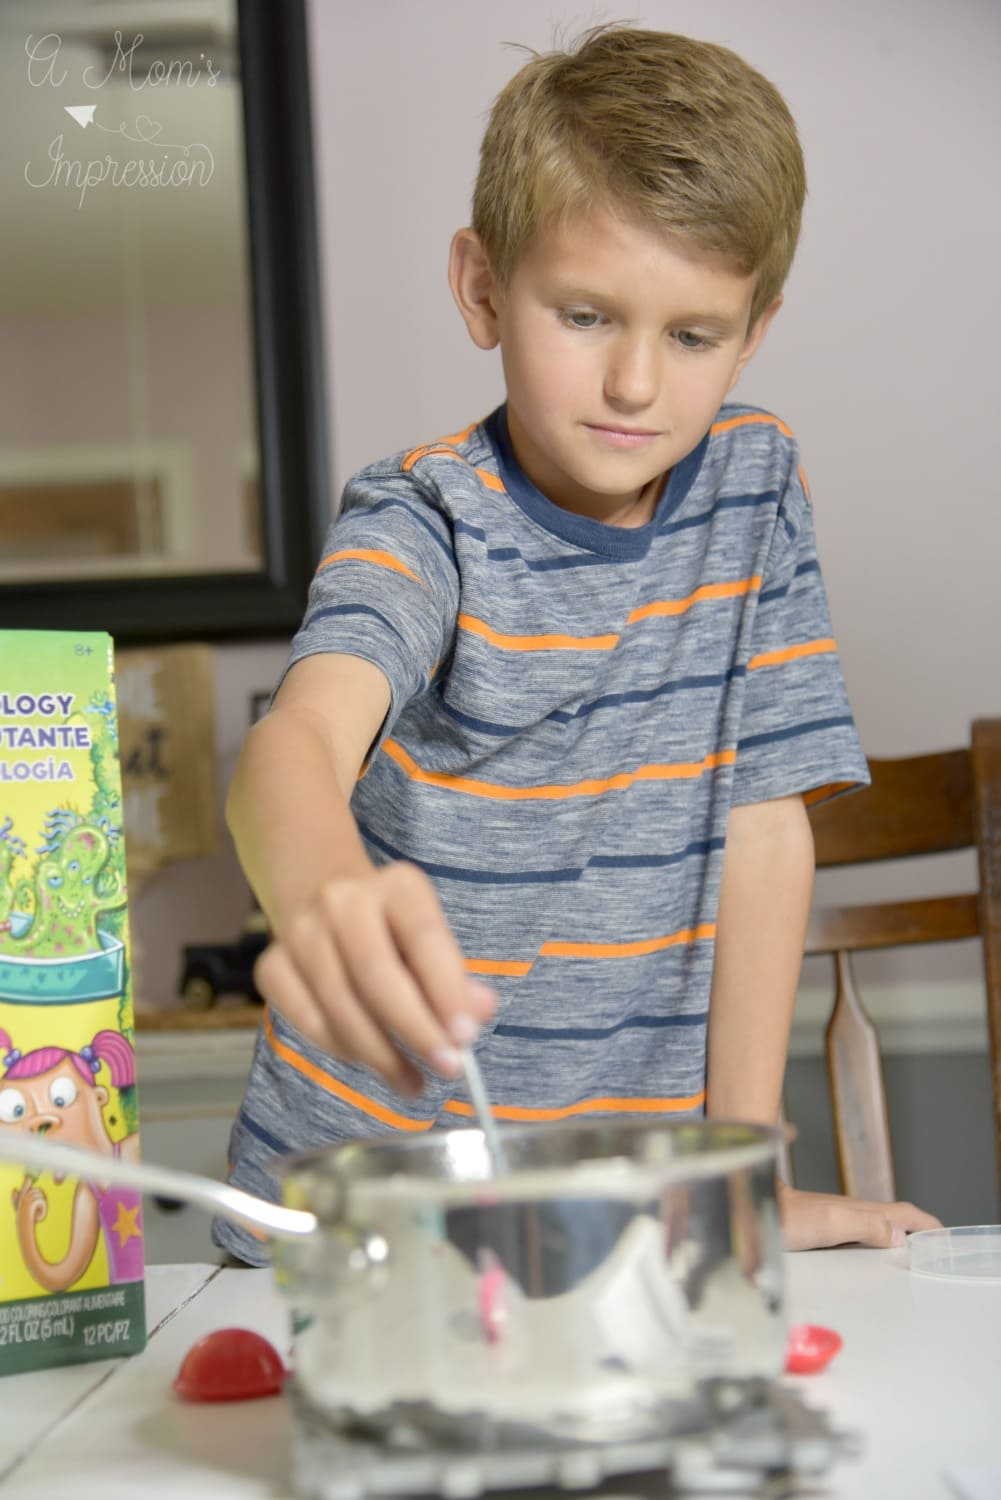 boy playing with stiring science experiment in a saucepan